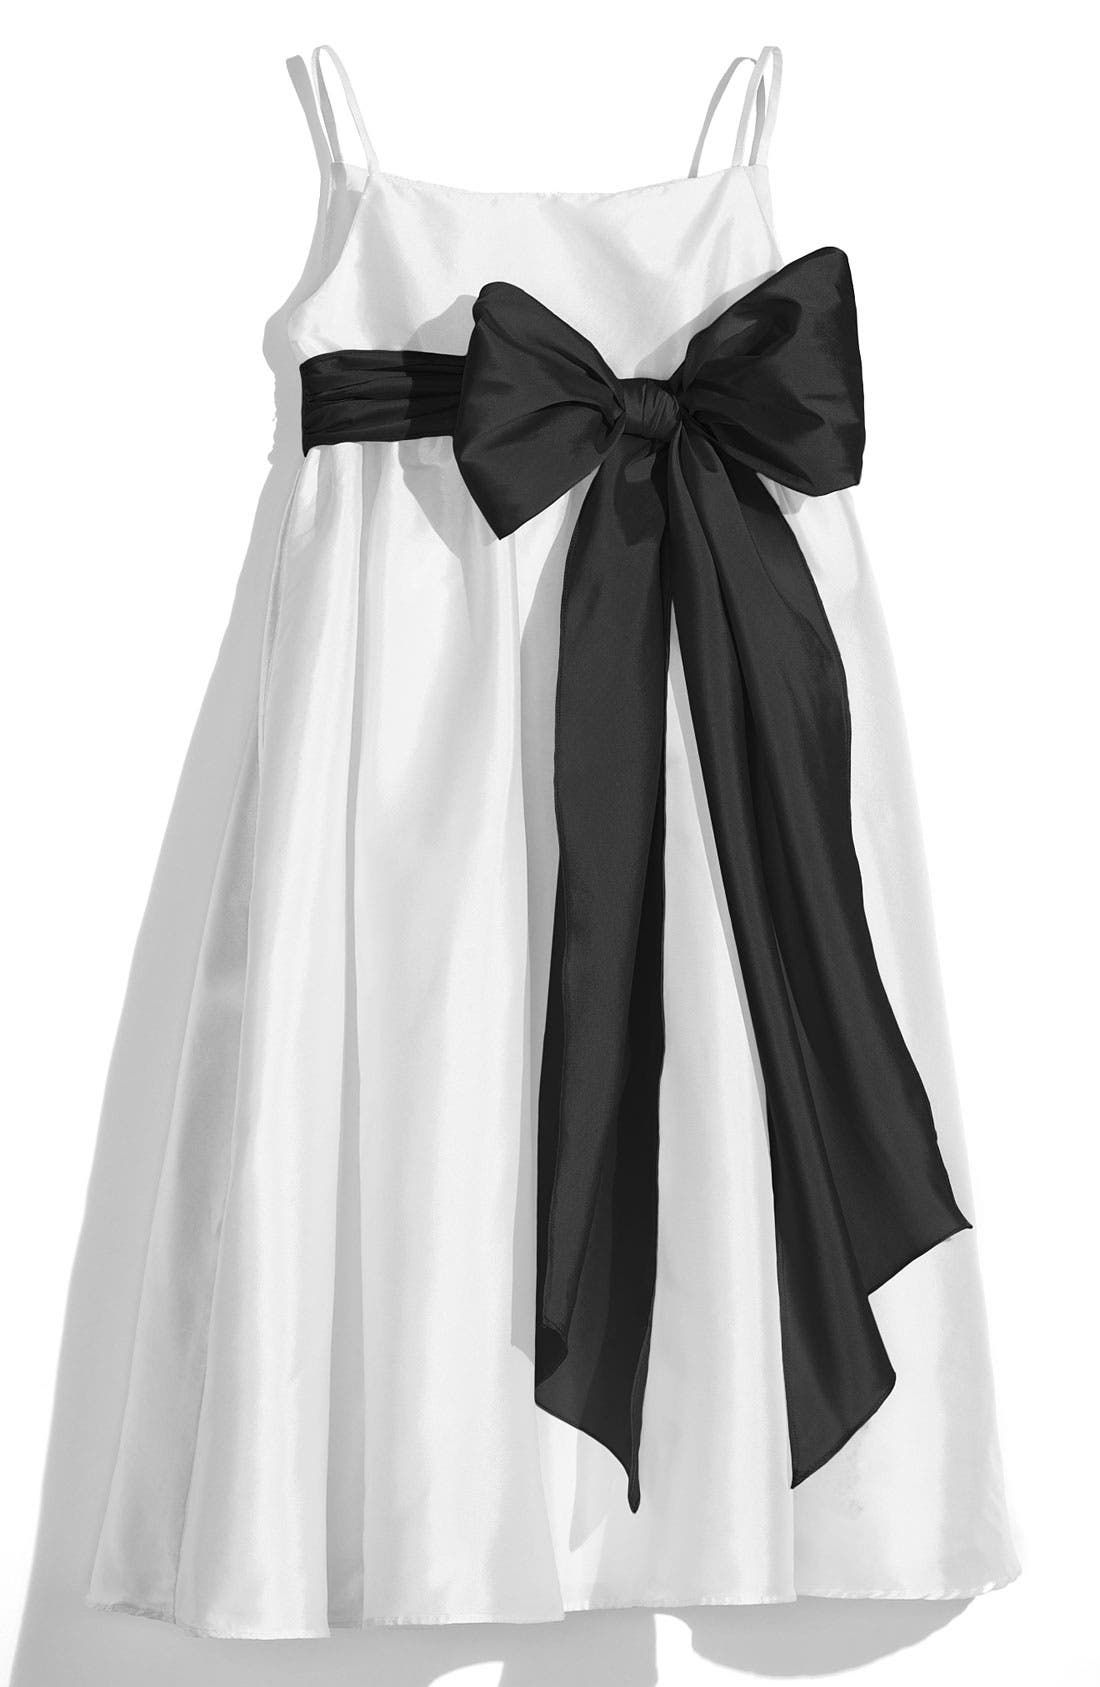 US ANGELS White Sleeveless Empire Waist Taffeta Dress, Main, color, 001